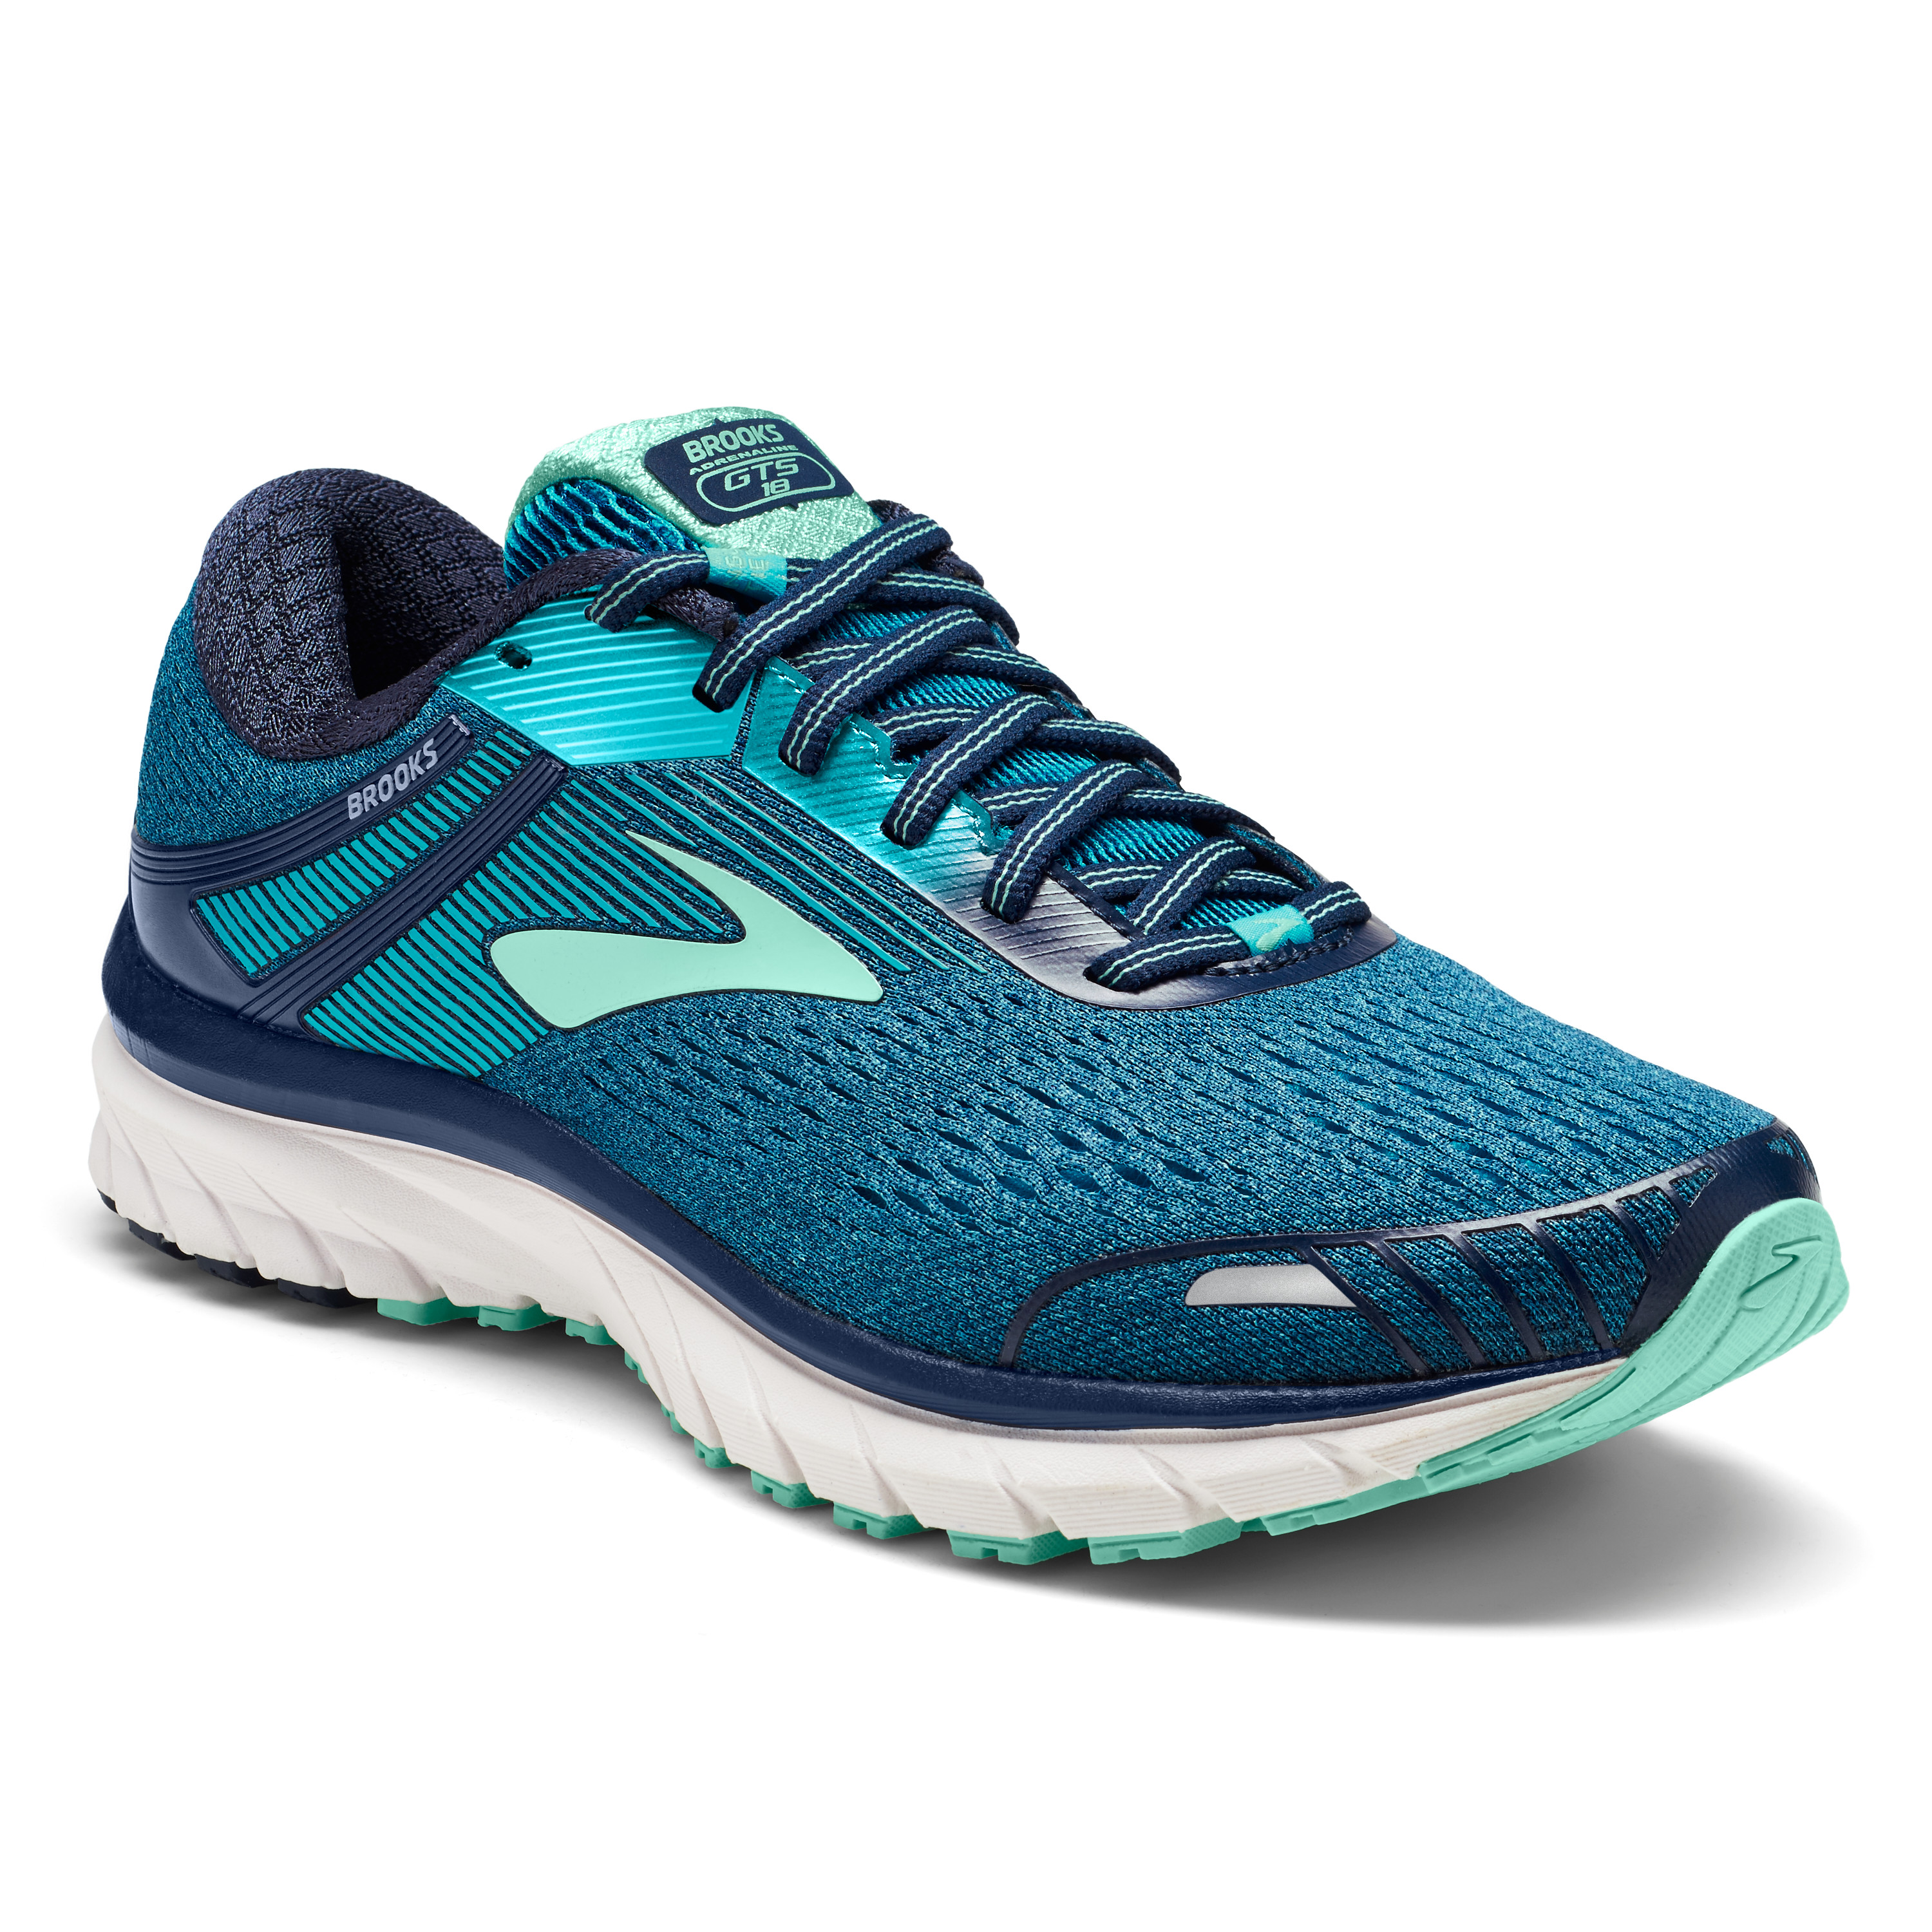 07be4149acb Brooks Adrenaline GTS 18 Road Running Shoes - Womens